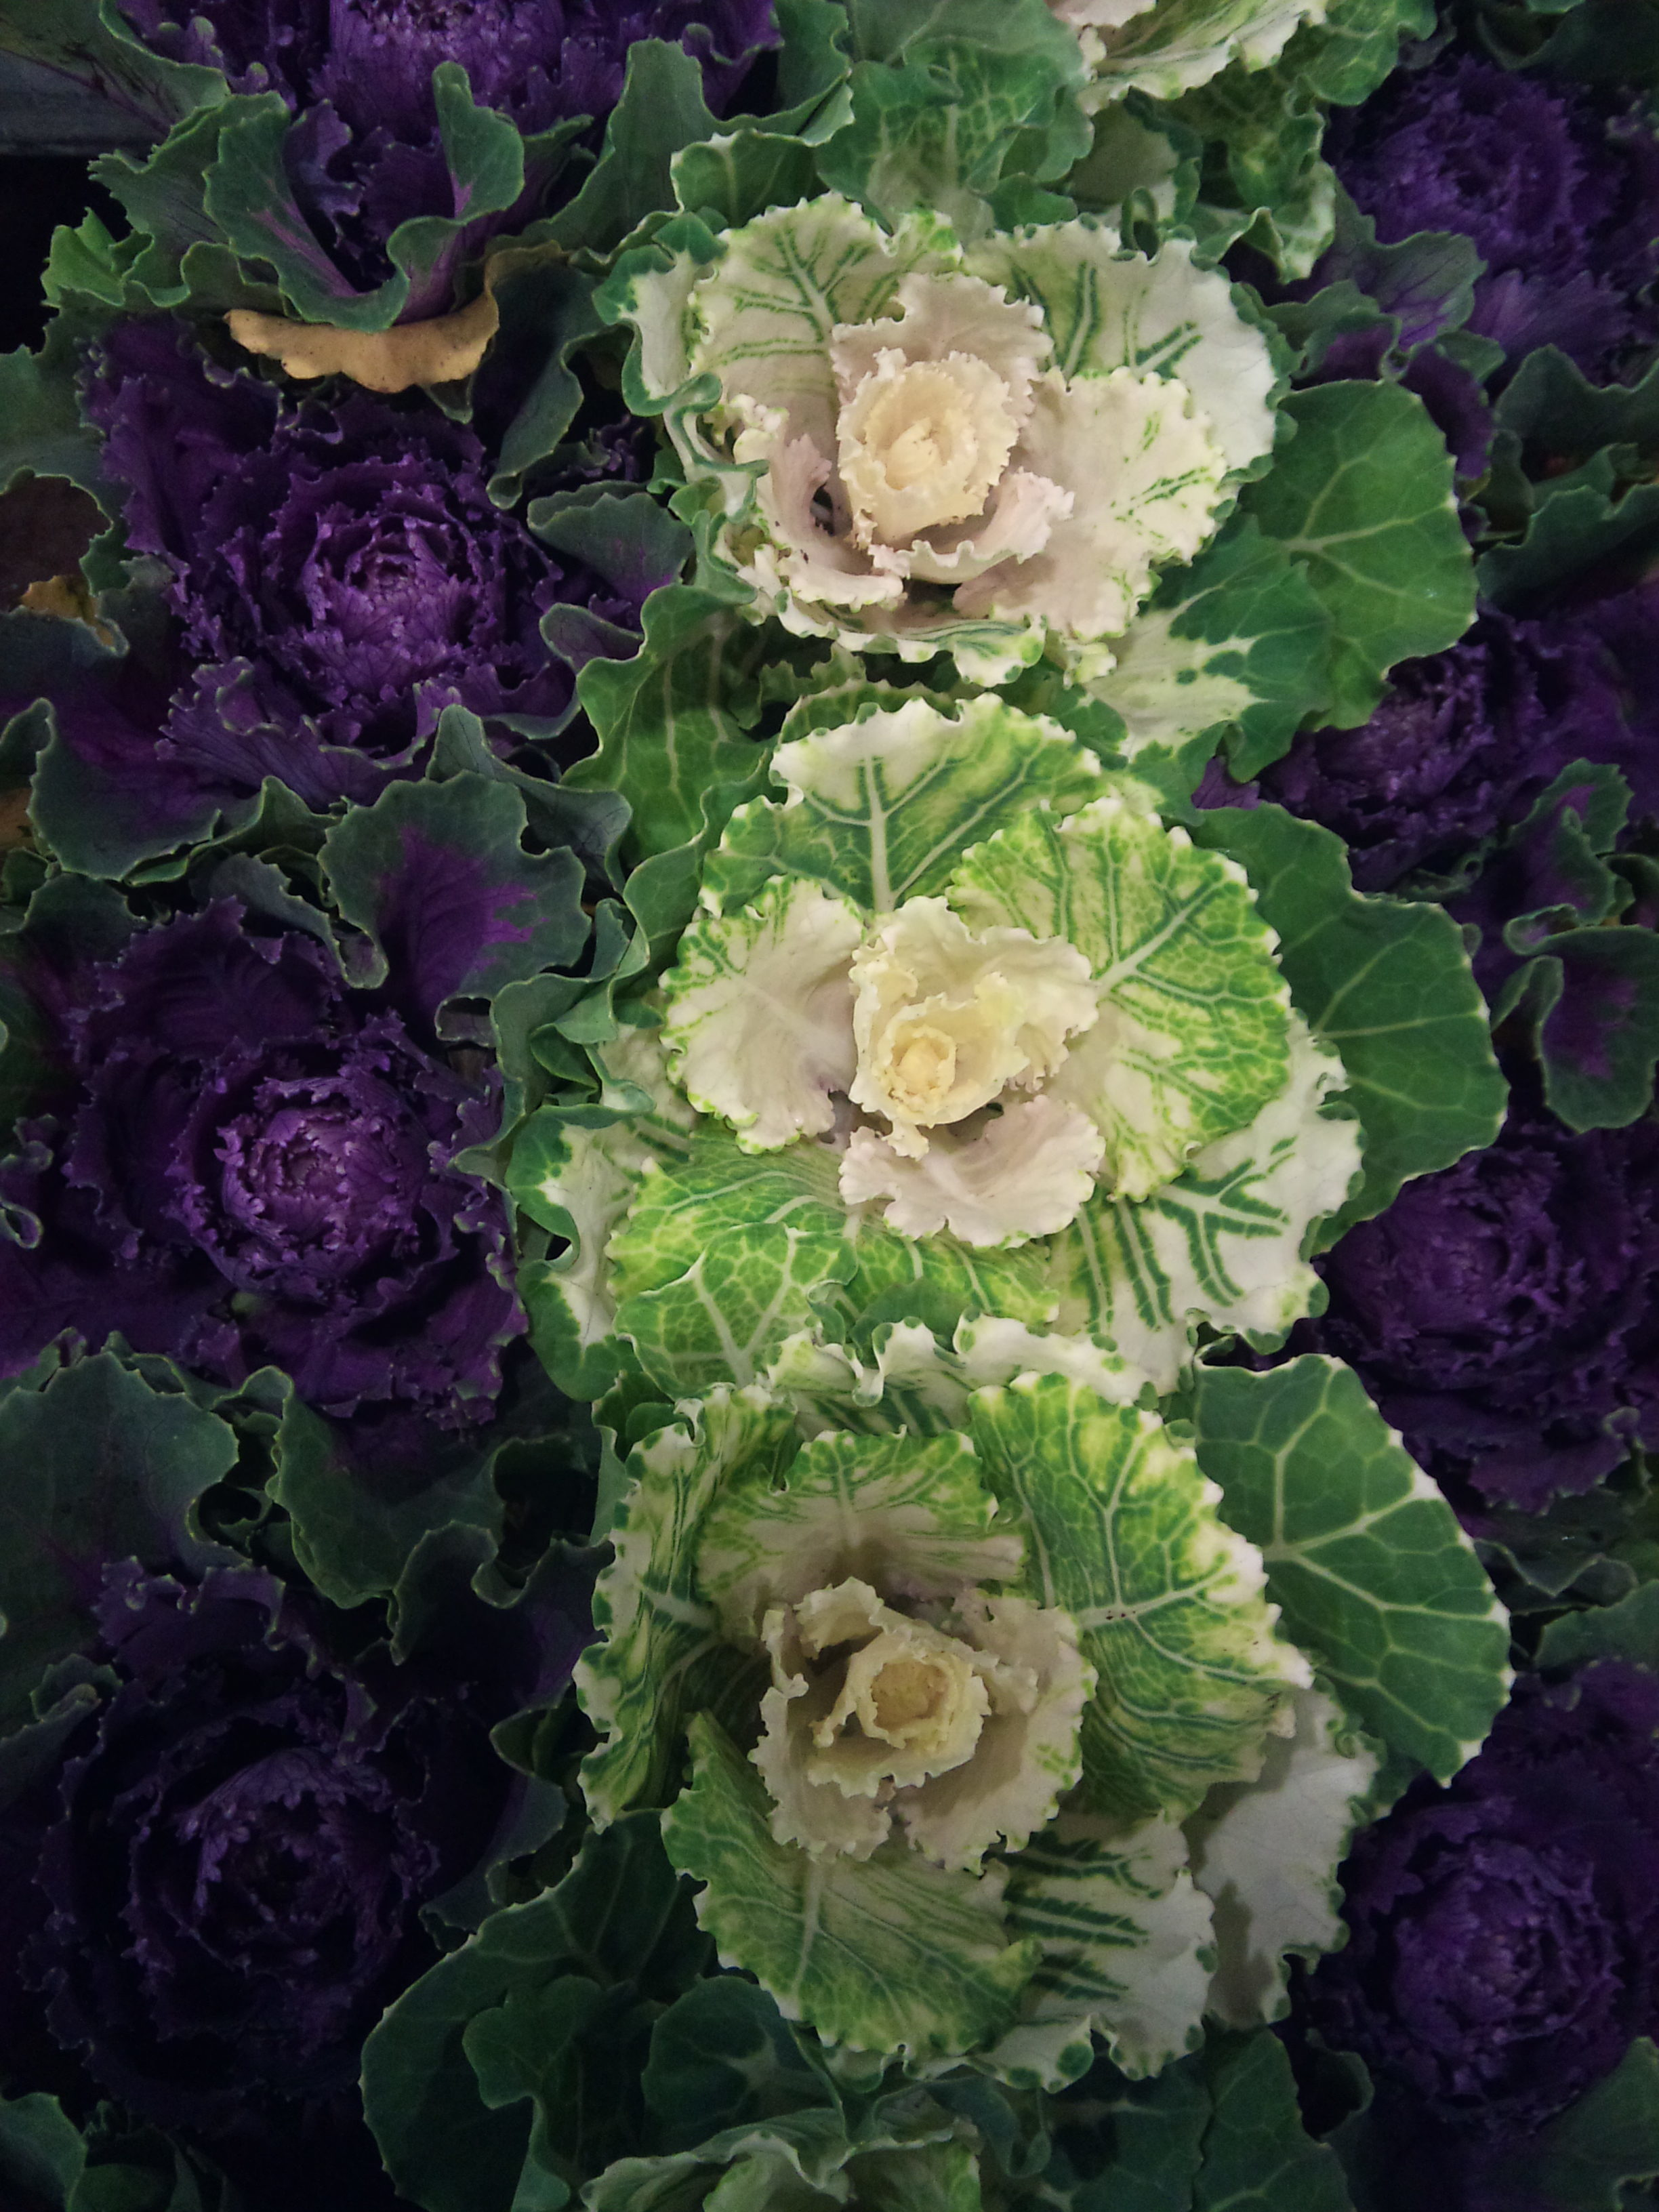 2012-11-potted-cabbage.jpg?mtime=20171003160414#asset:12702